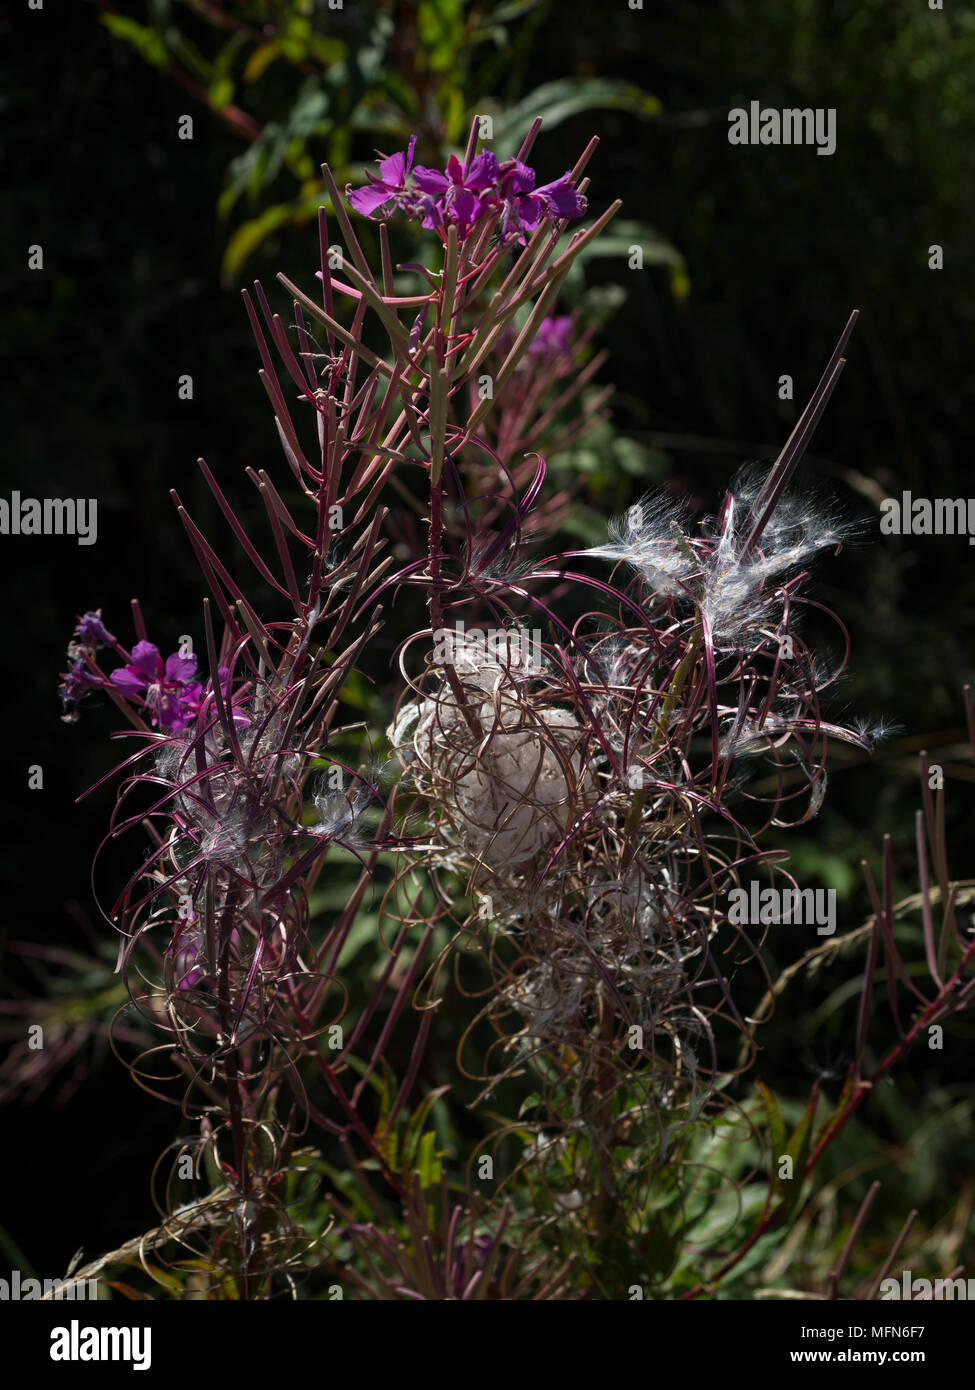 Seeds of Chamaenerion angustifolium ready to fly away in the wind. Stock Photo